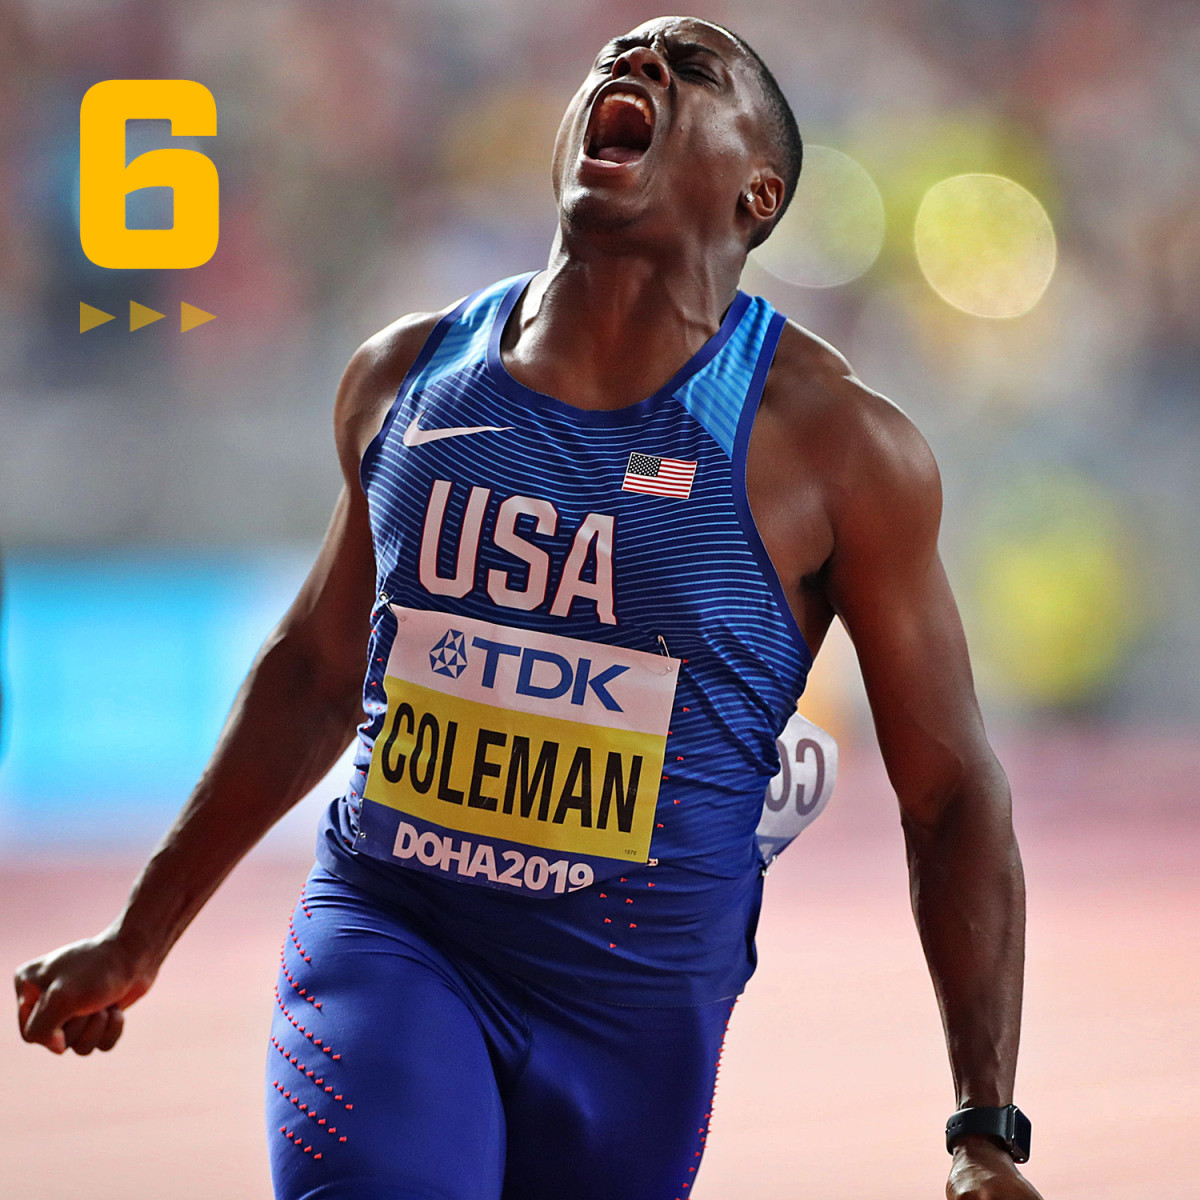 Christian_Coleman_02_GRAPHIC_M6